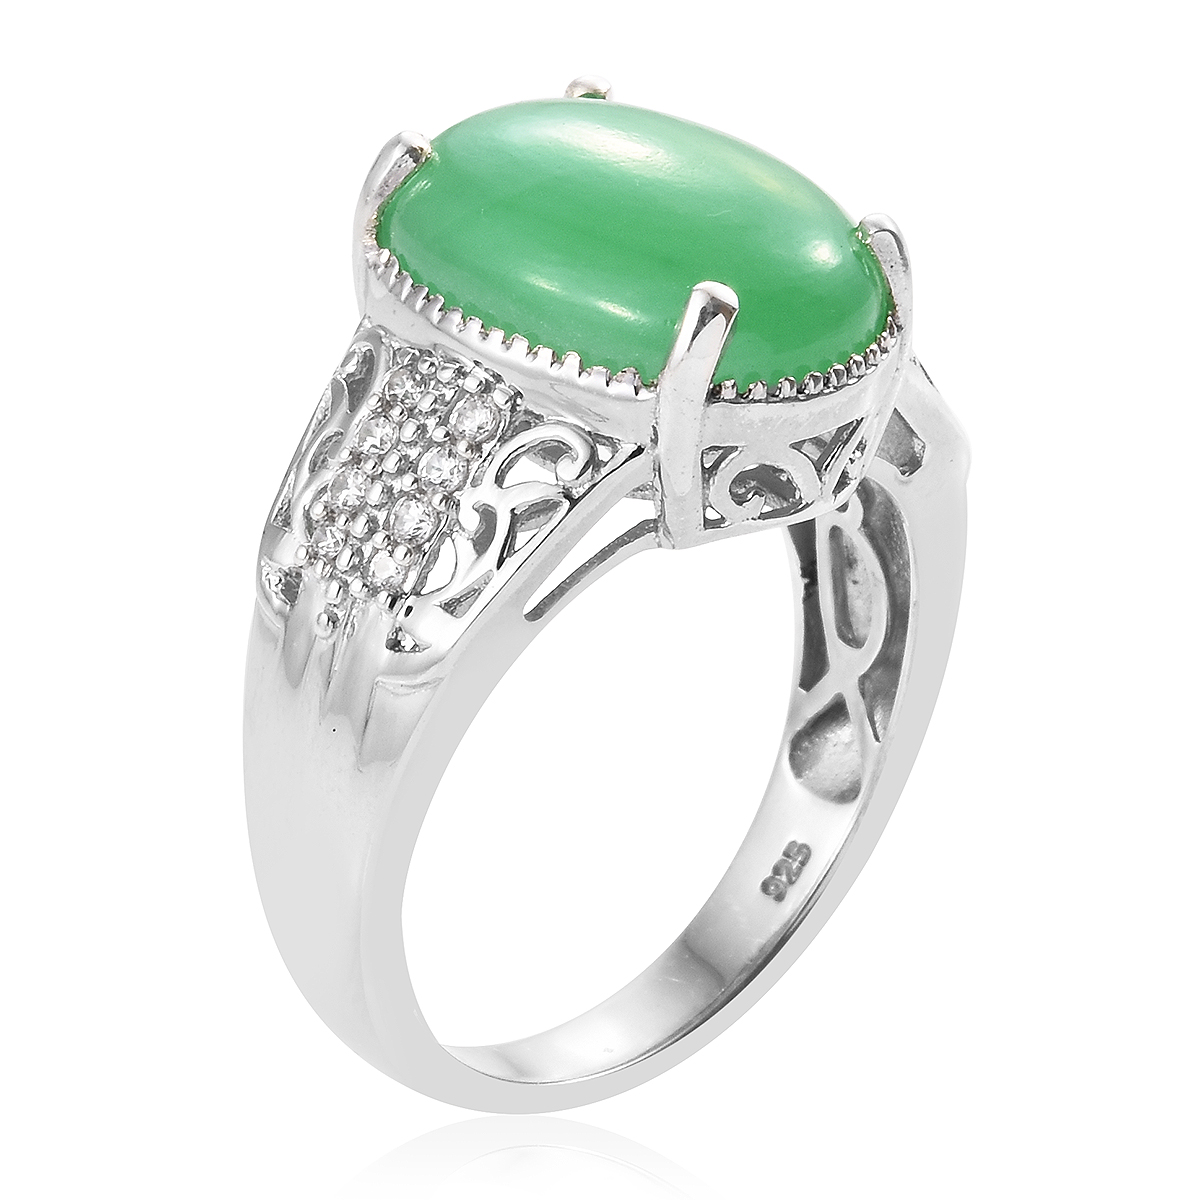 Burmese Green Jade, Cambodian Zircon Ring in Platinum Over Sterling Silver (Size 7.0) 10.13 ctw